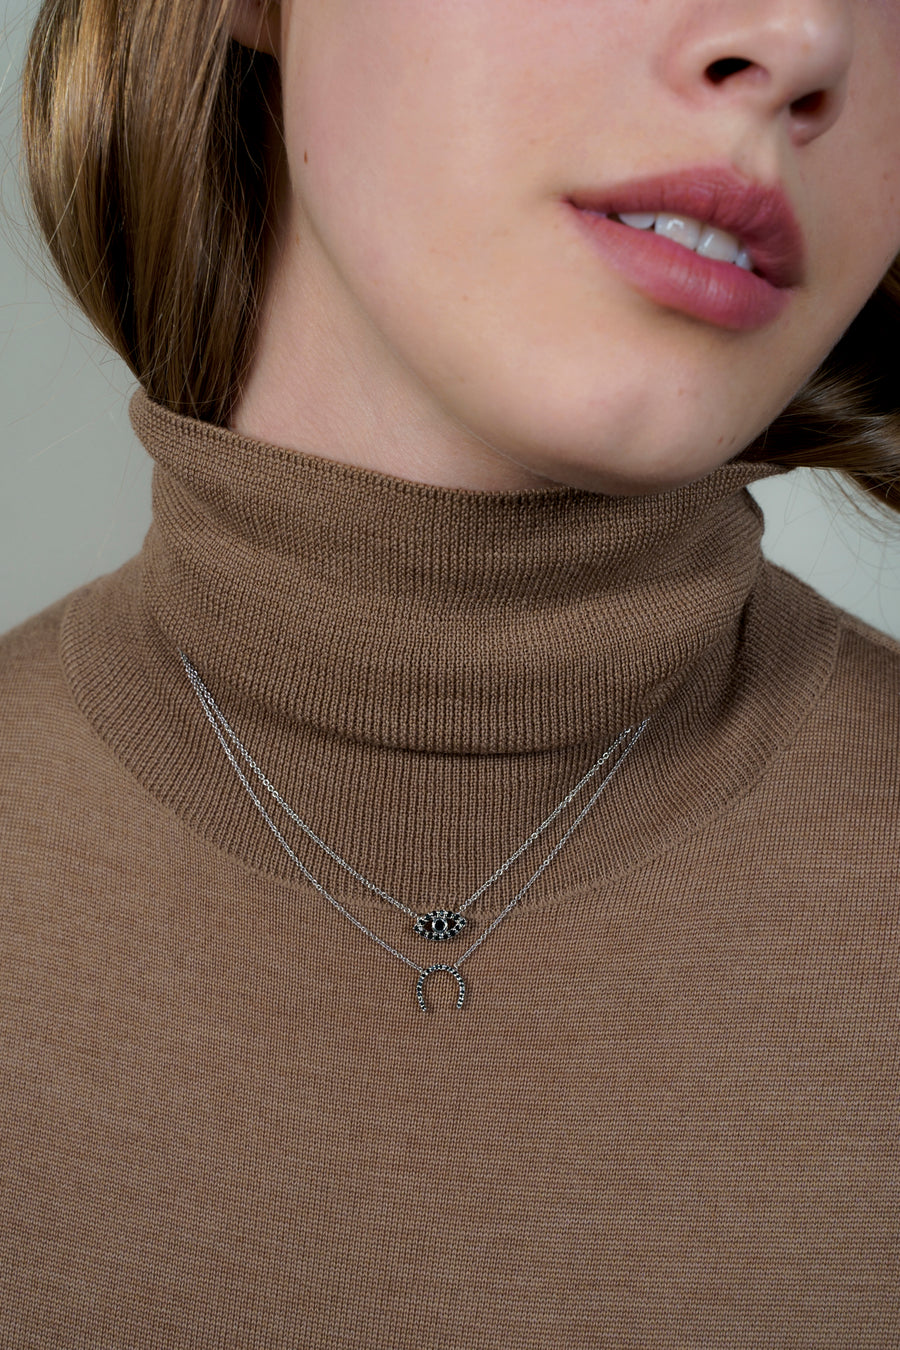 Petite black horseshoe necklace